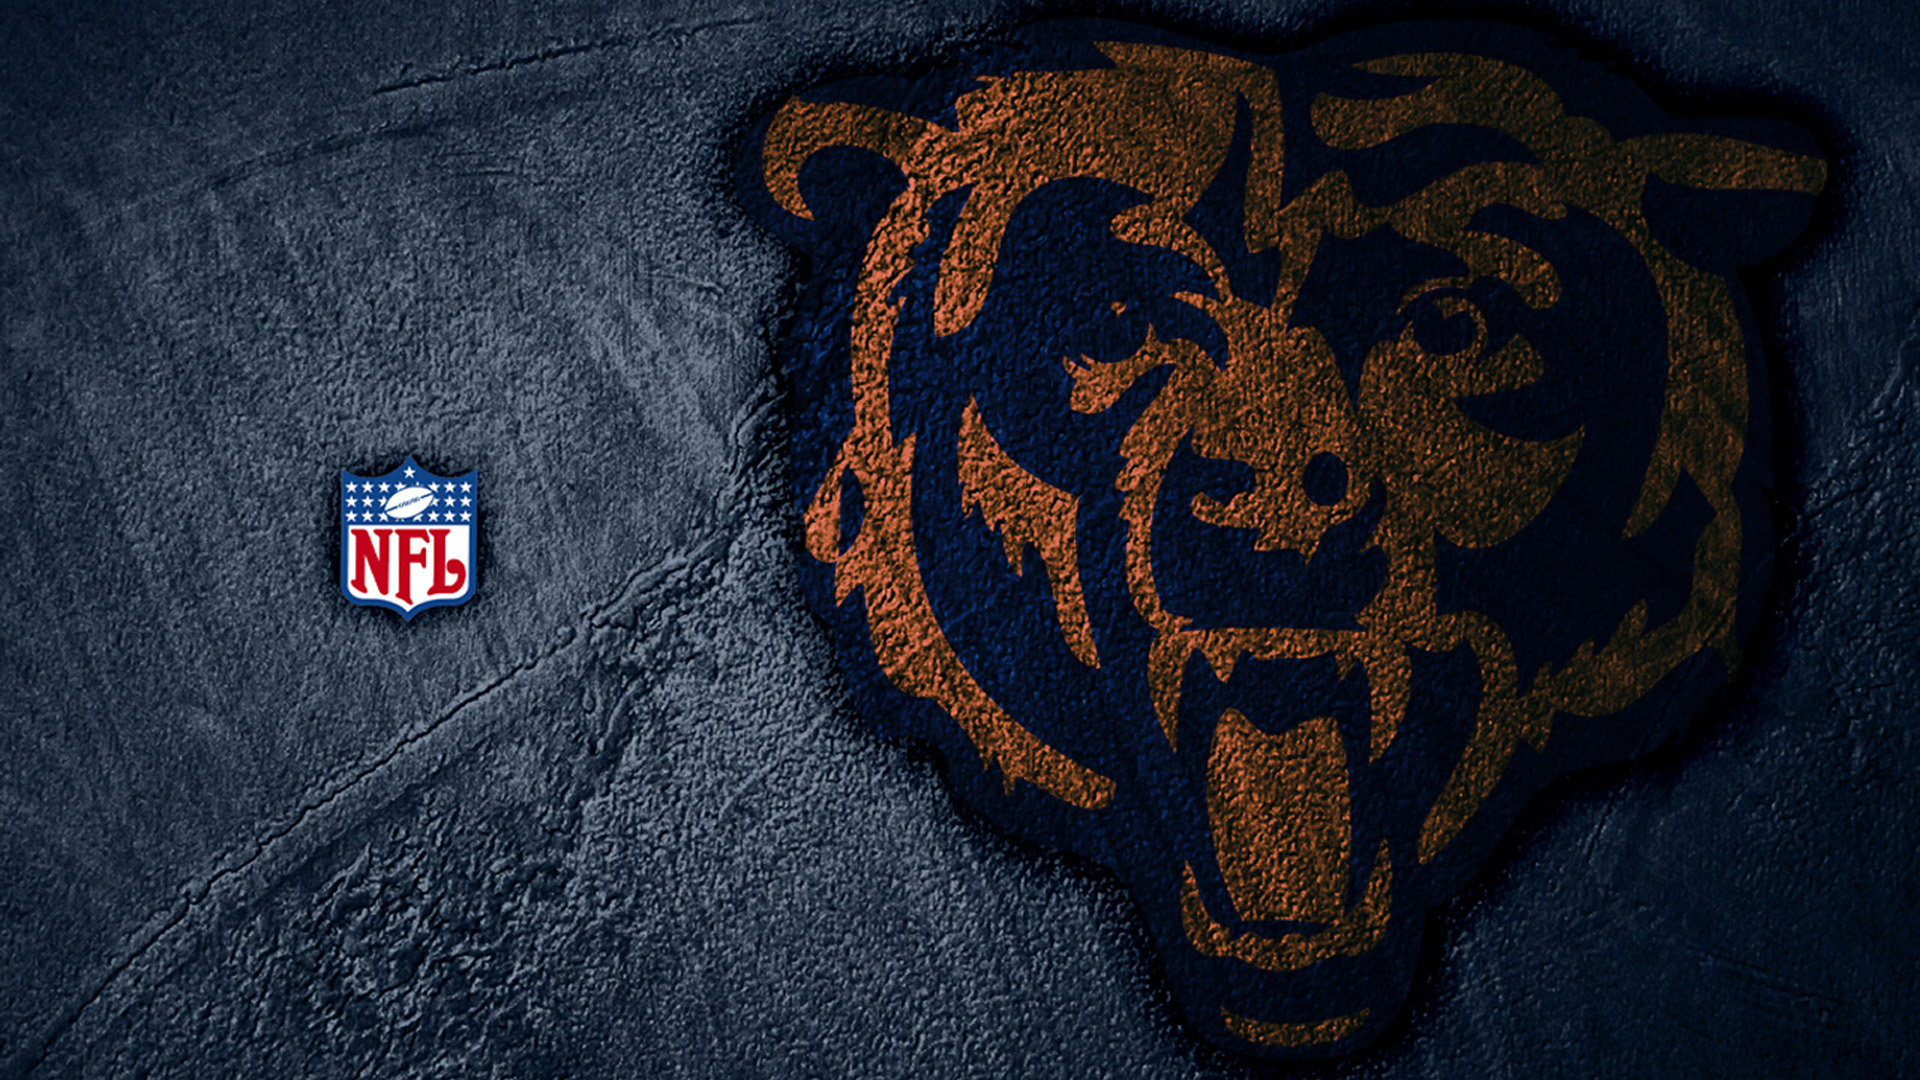 Chicago Bears wallpapers HD for desktop backgrounds 1920x1080